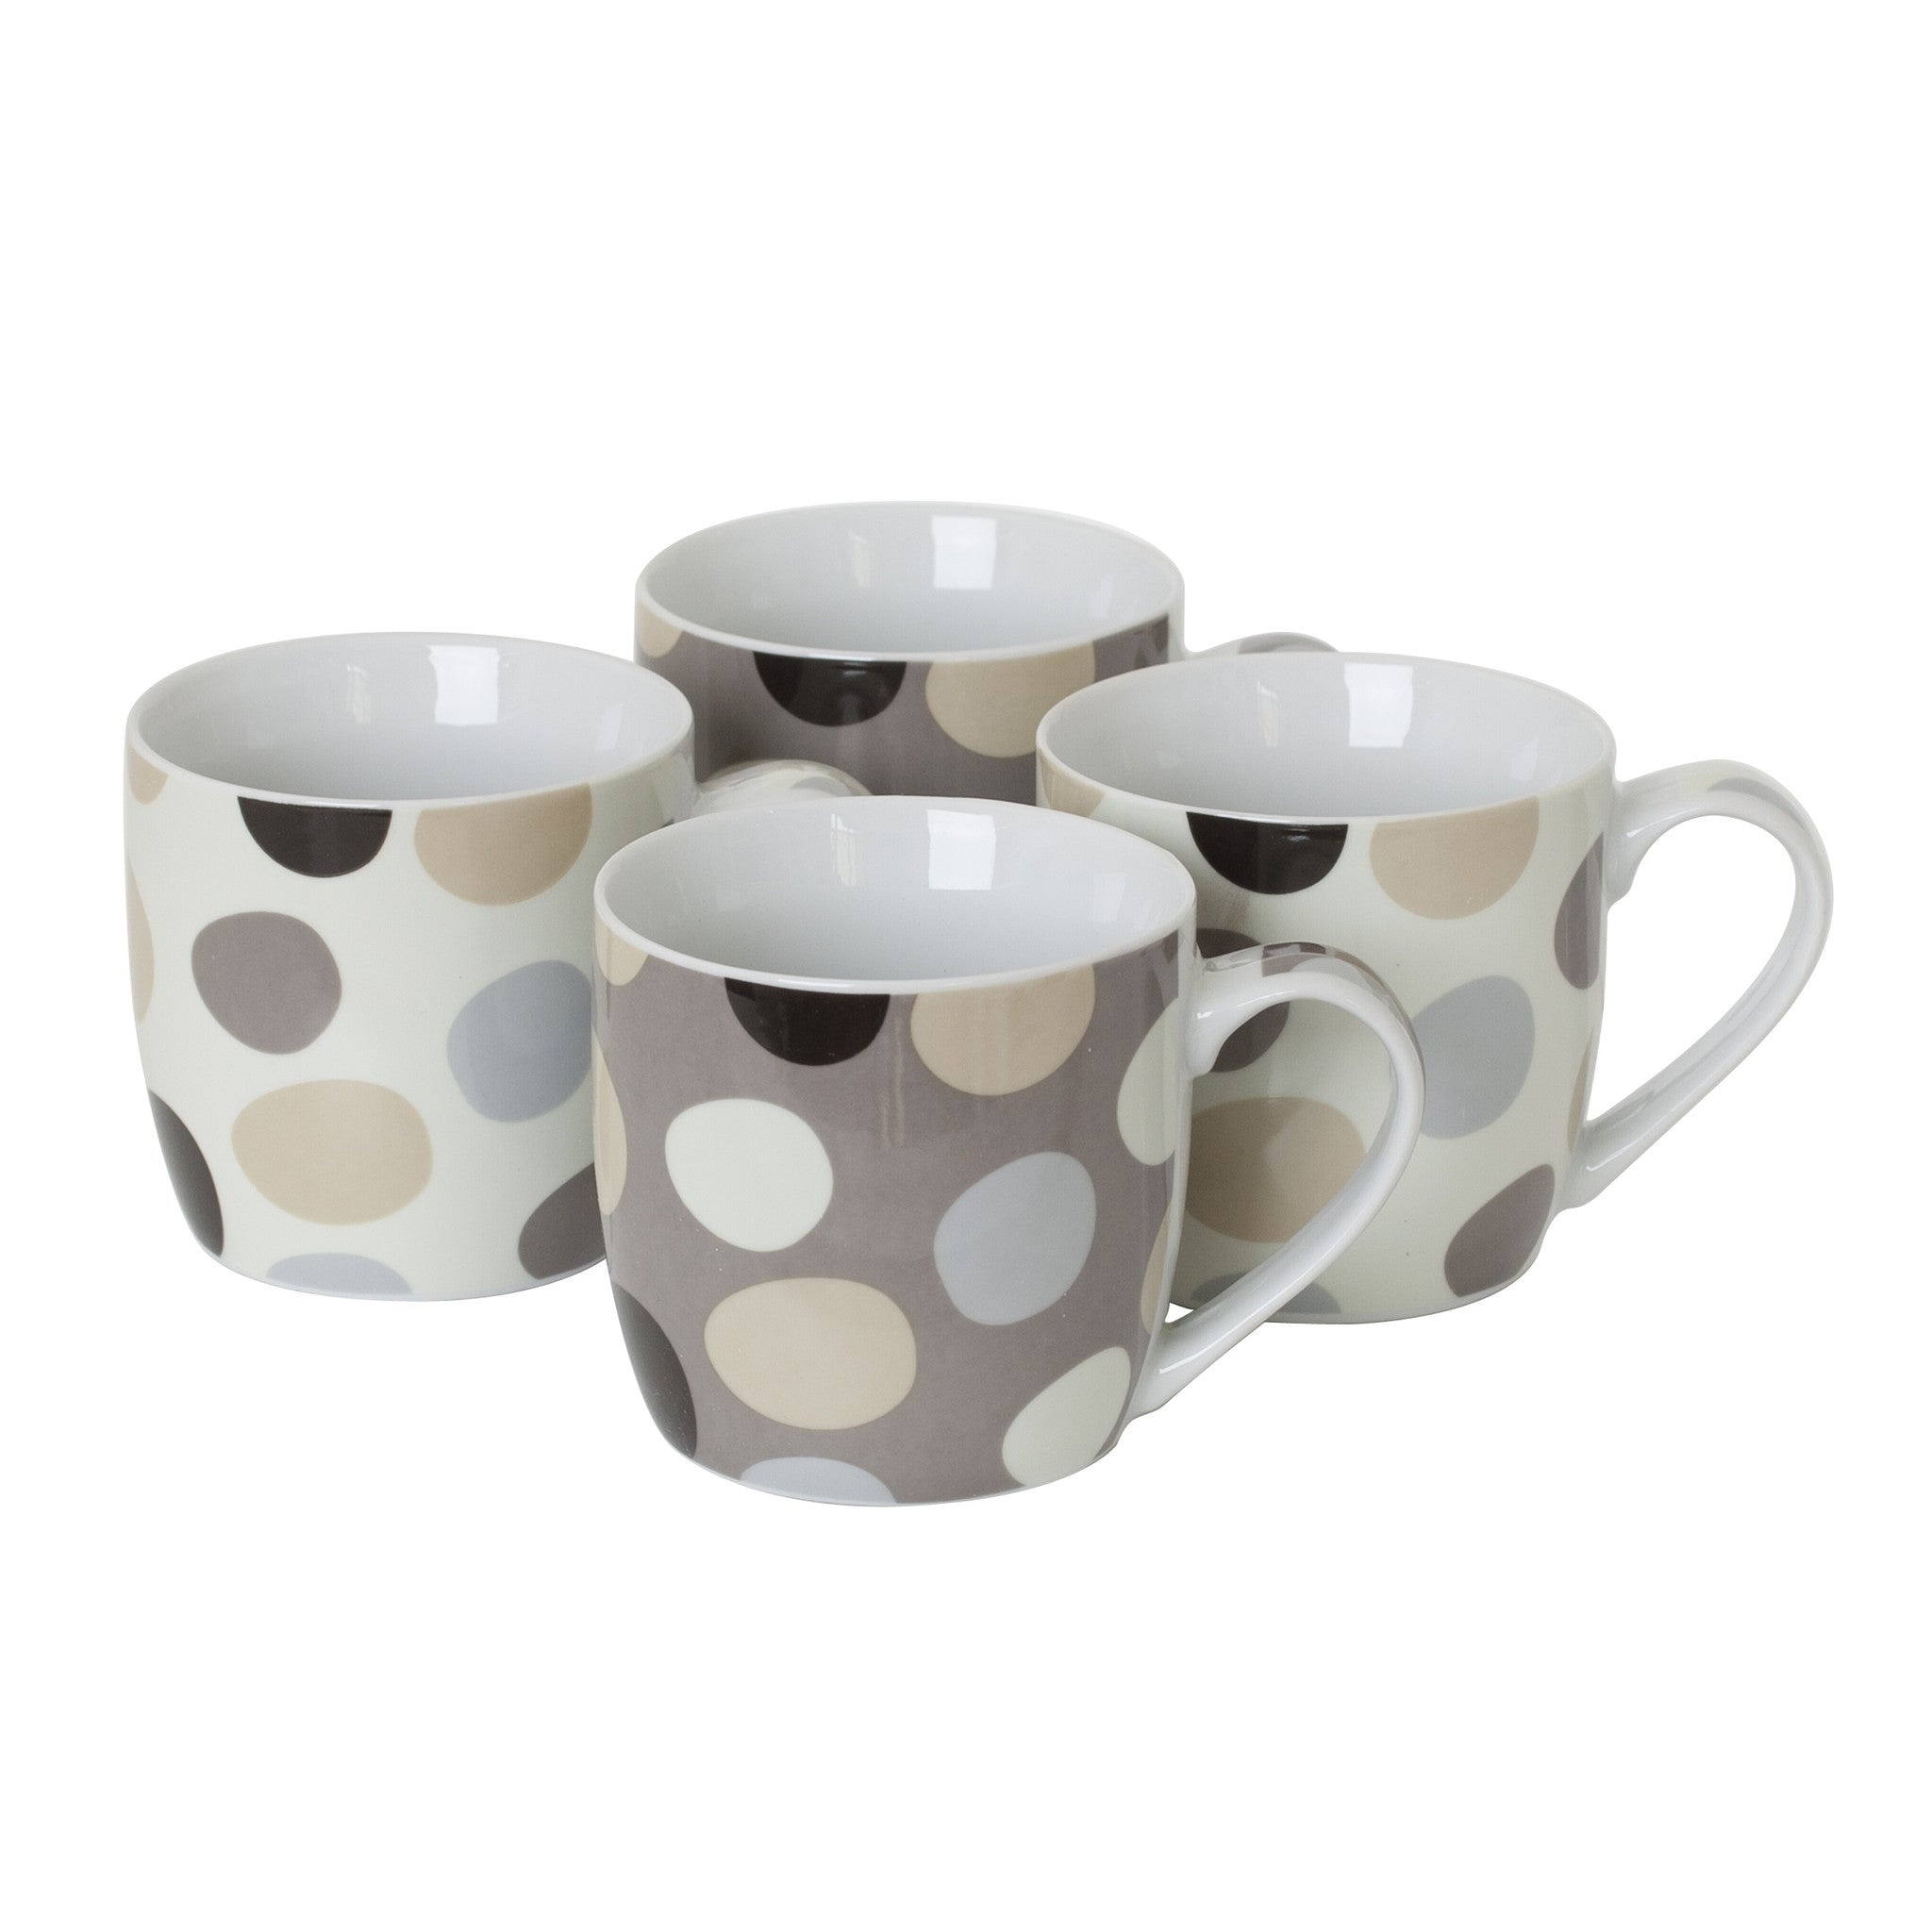 Sabichi 4pc Cobble Mug Set-107329 - Homely Nigeria